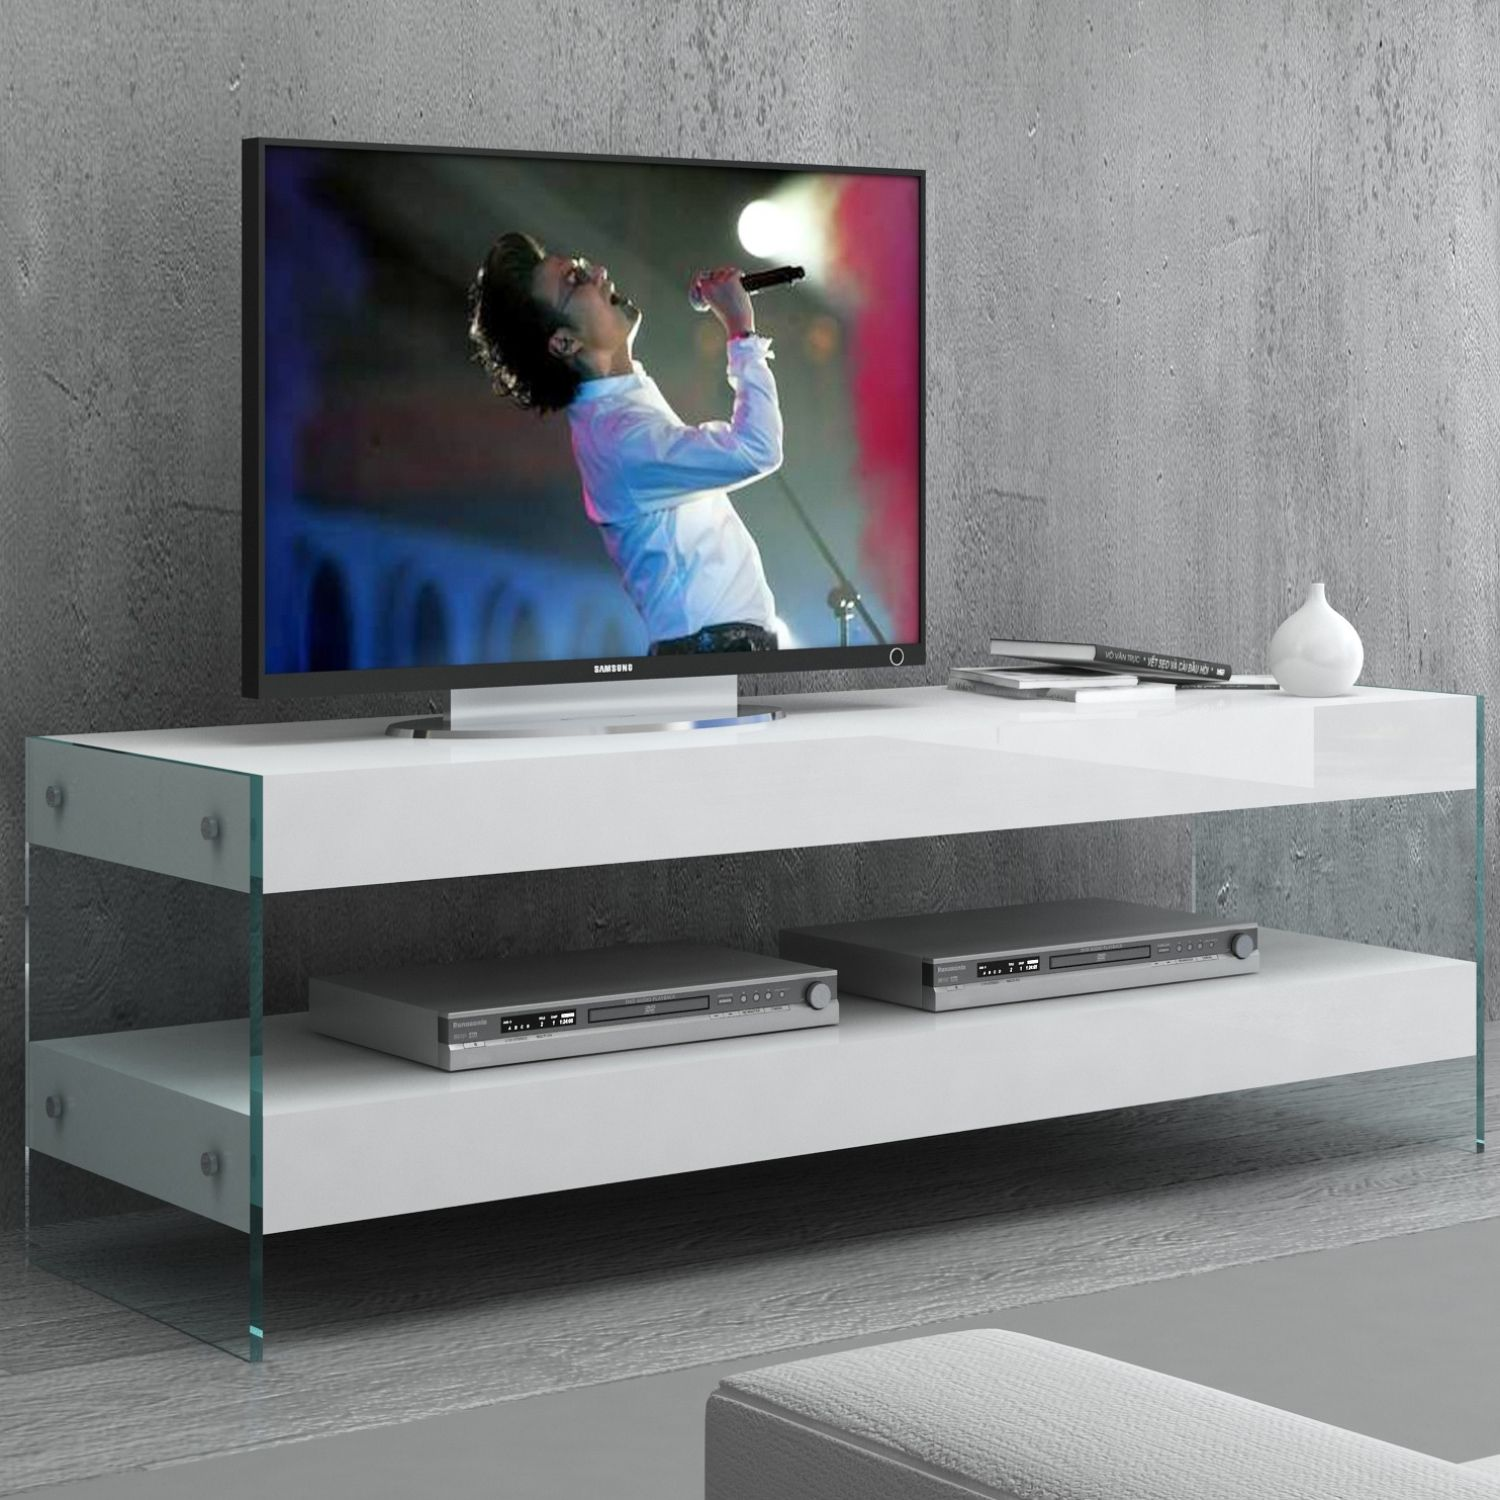 J And M Furniture 179601 Mtv Cloud 59 Tv Stand High Gloss White Tempered Glass Tv Stand High Gloss Tv Stand High Gloss White J and m tv stand